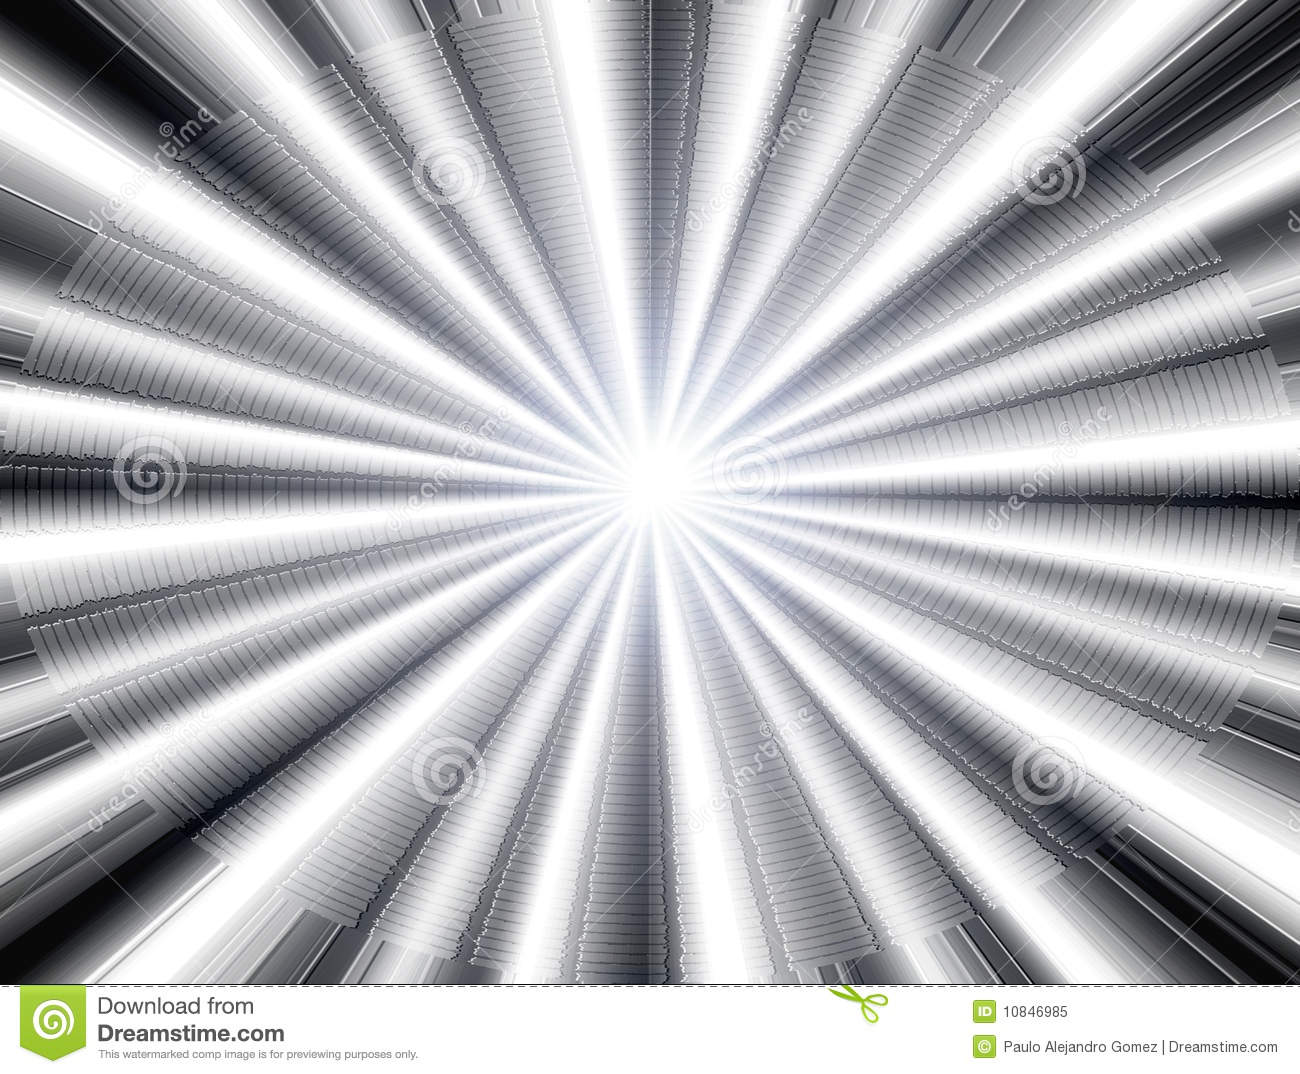 Ray Of Light Clipart.